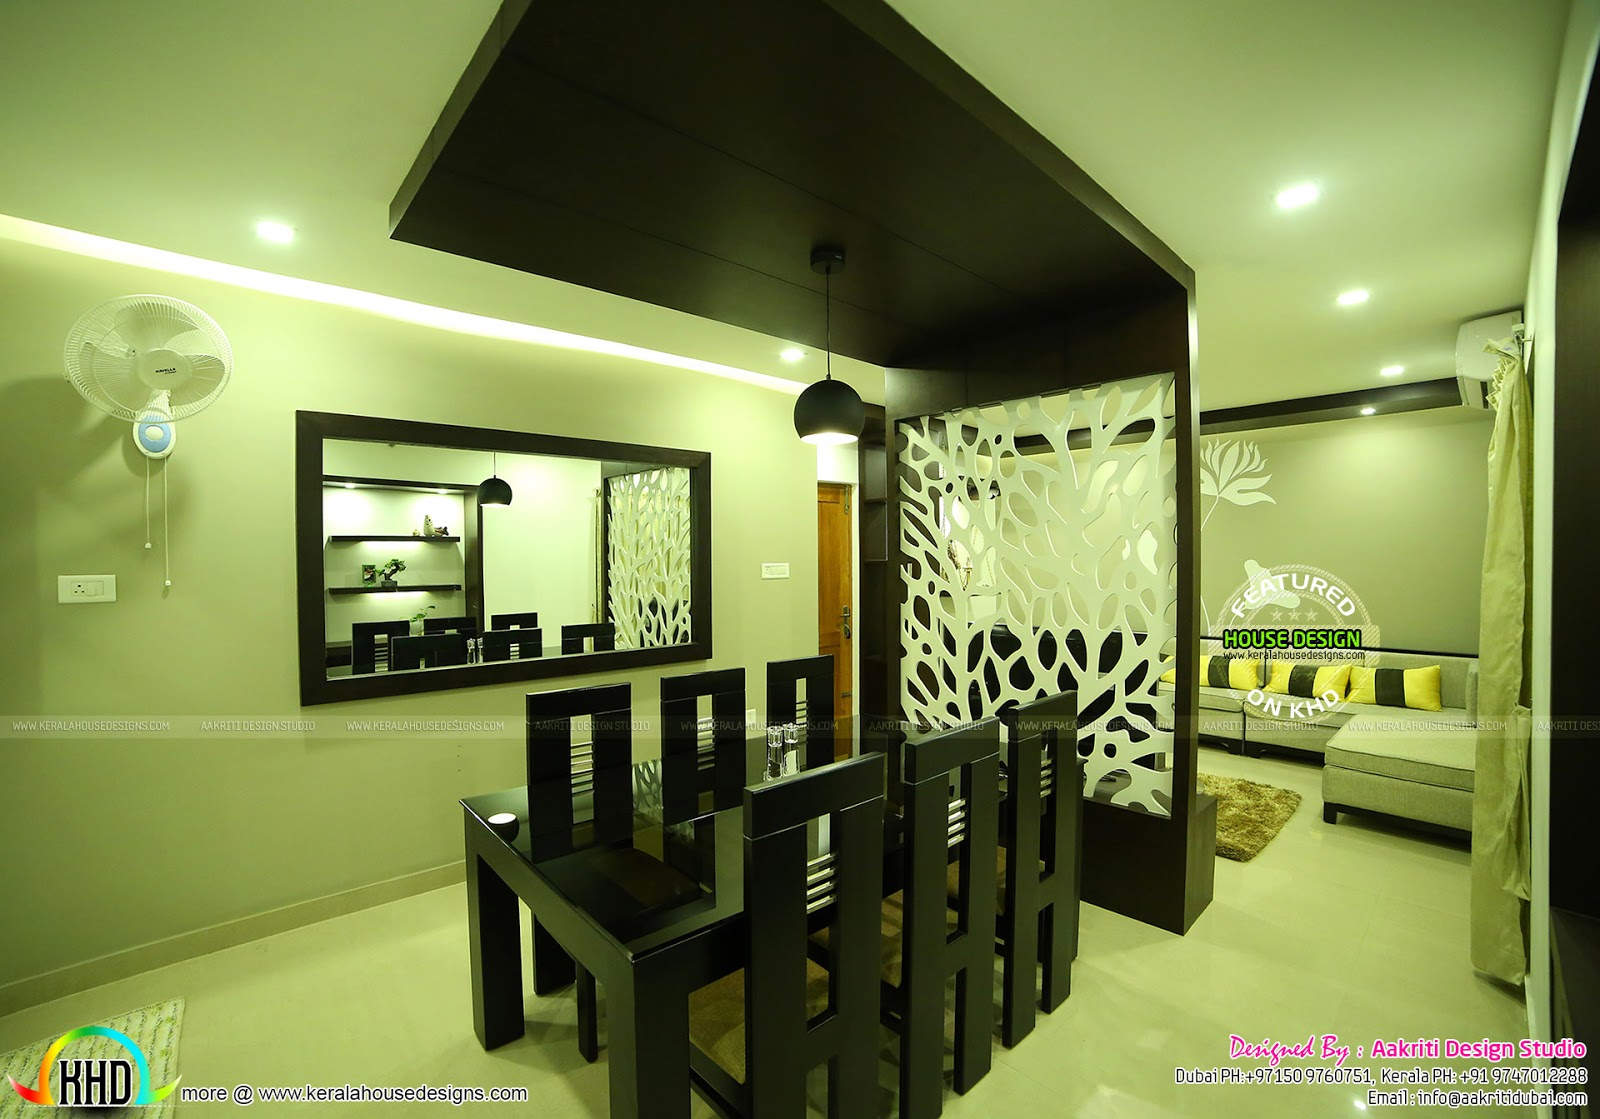 Finished Interior Photos From Kannur Kerala Kerala Home